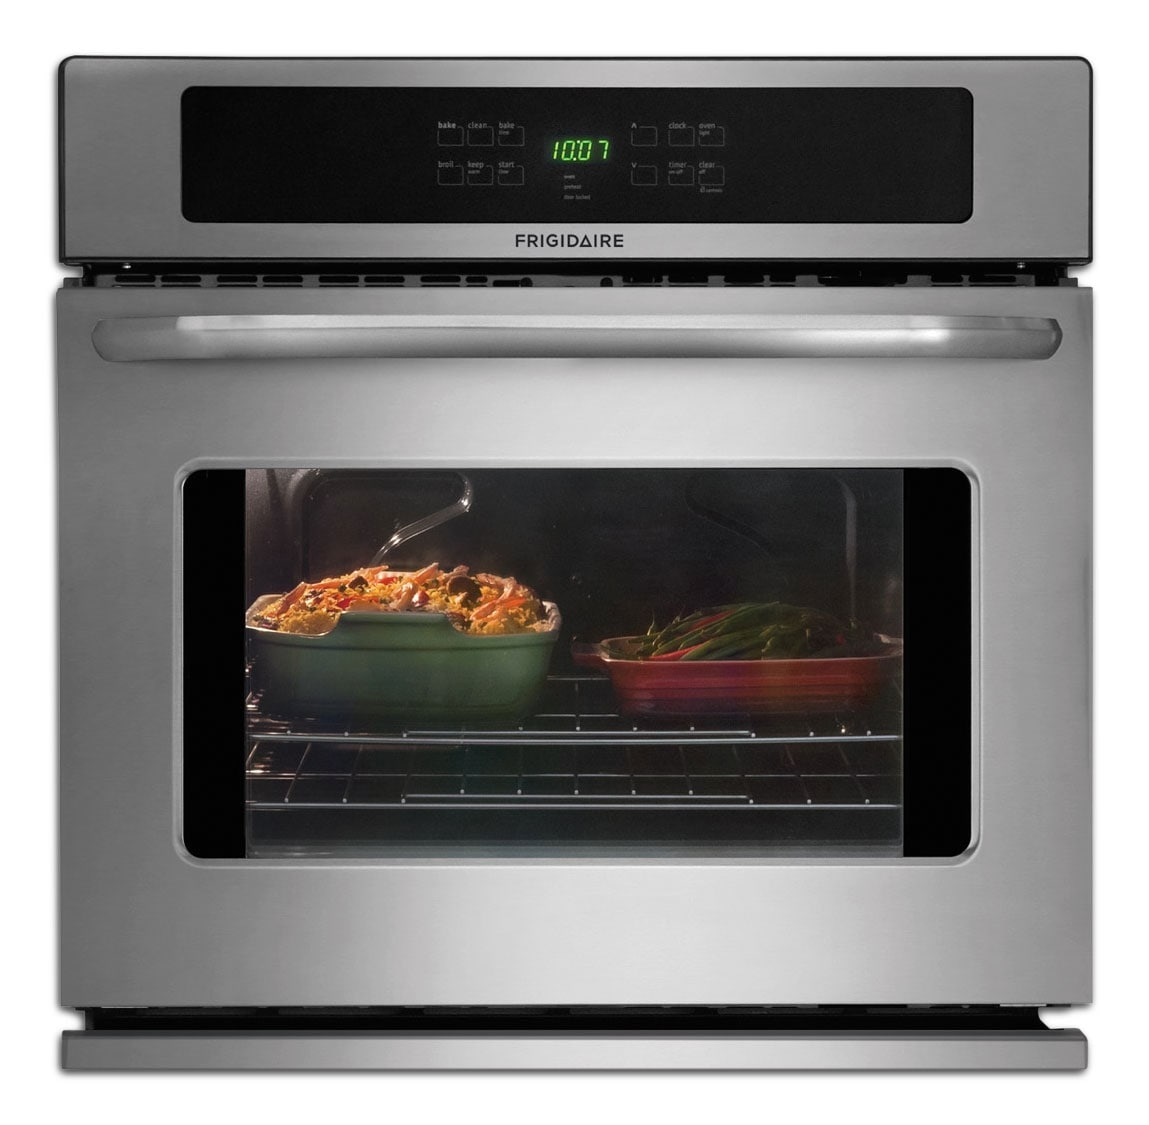 Cooking Products - Frigidaire Stainless Steel Wall Oven (4.6 Cu. Ft.) - FFEW3025PS